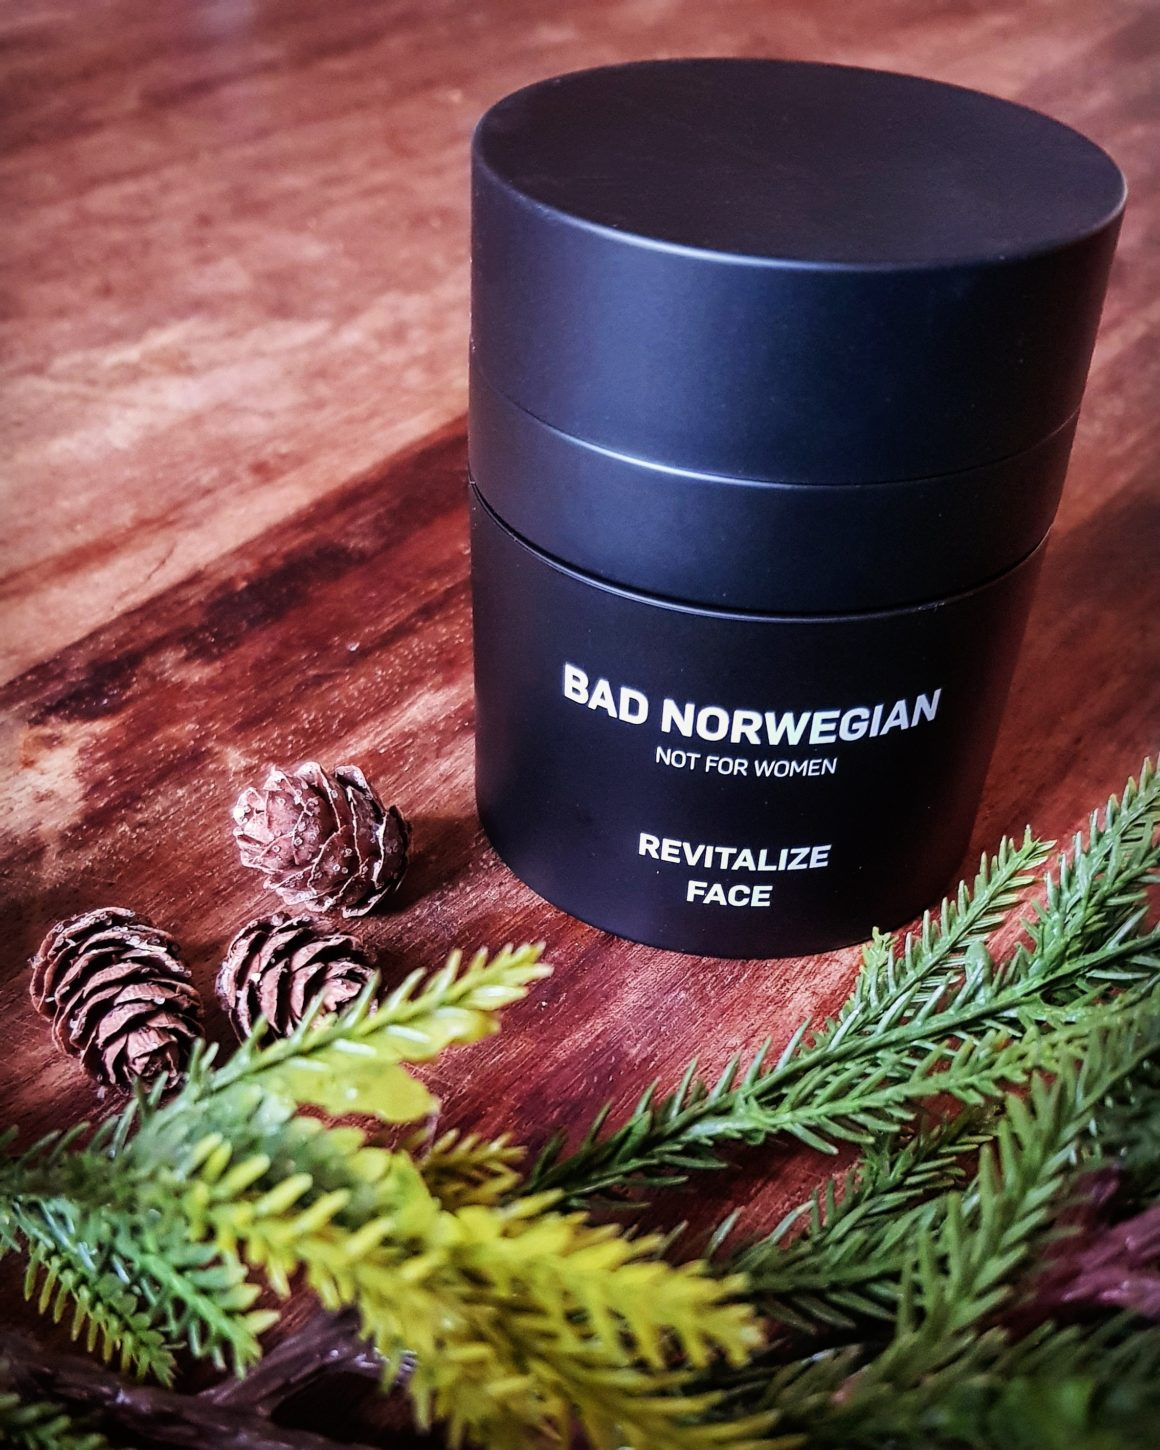 Revamp your regime with BAD NORWEGIAN this advent REVITALIZE FACE